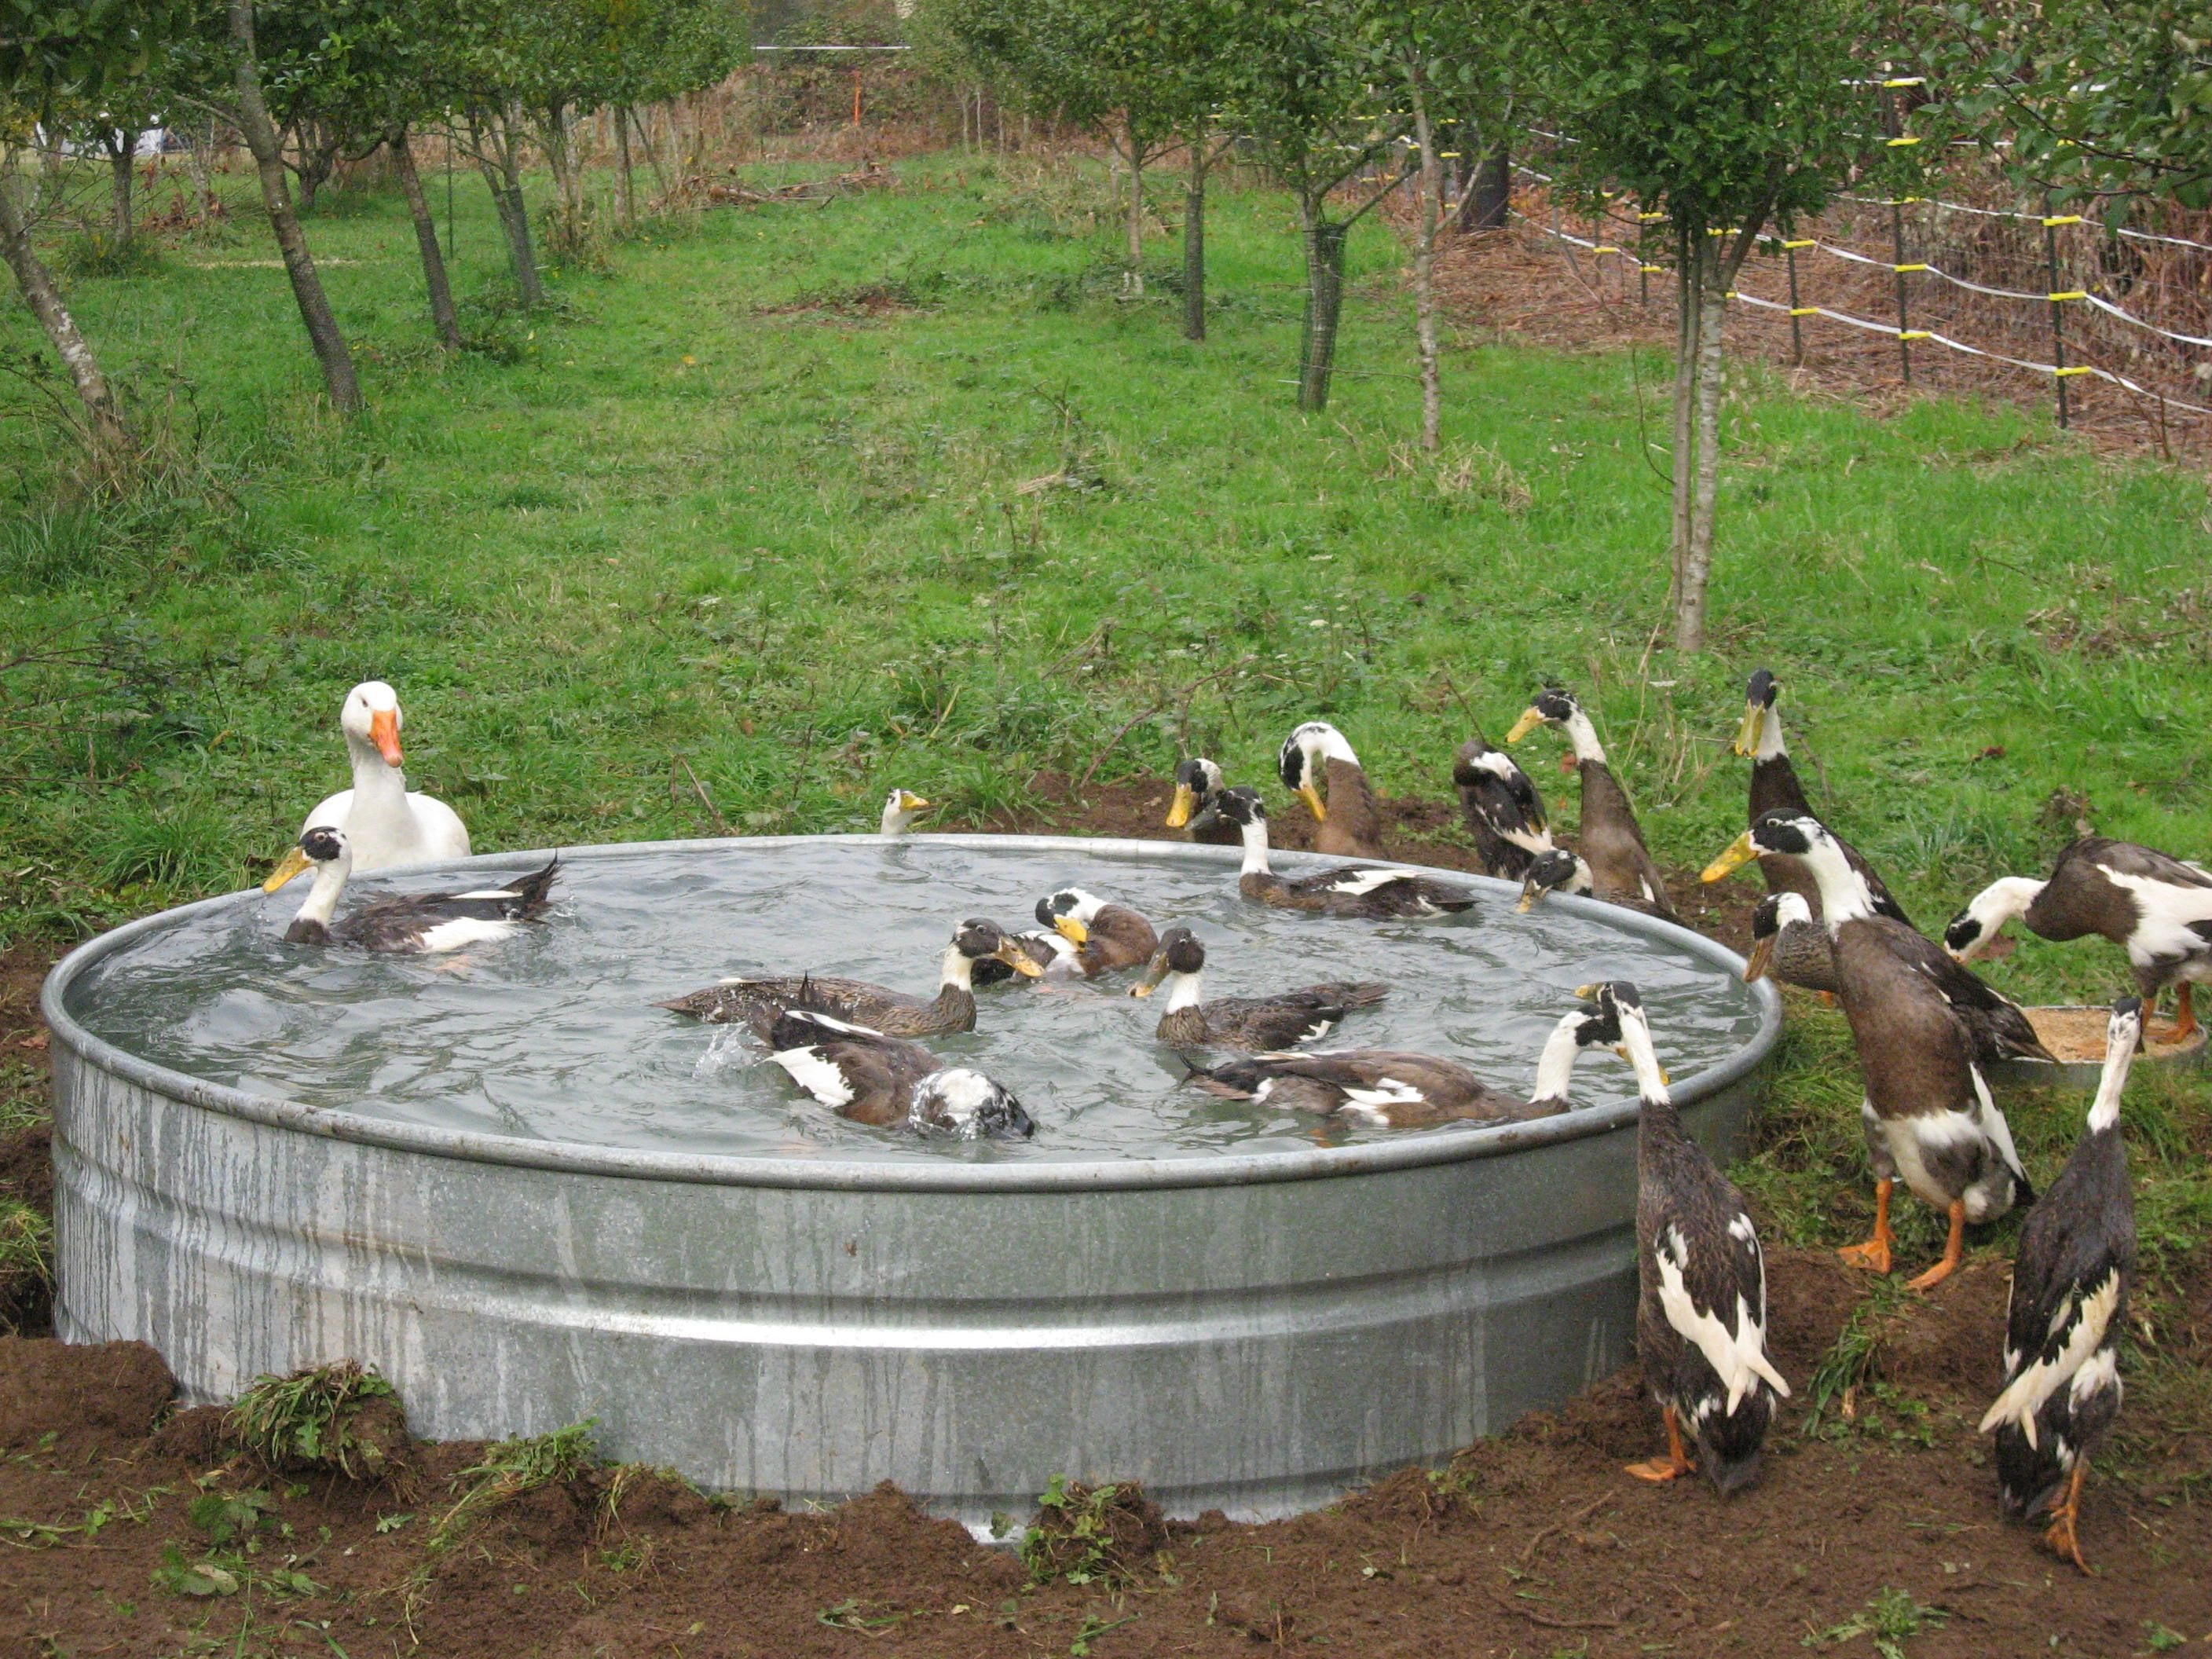 this is what I need for my ducks and geese!